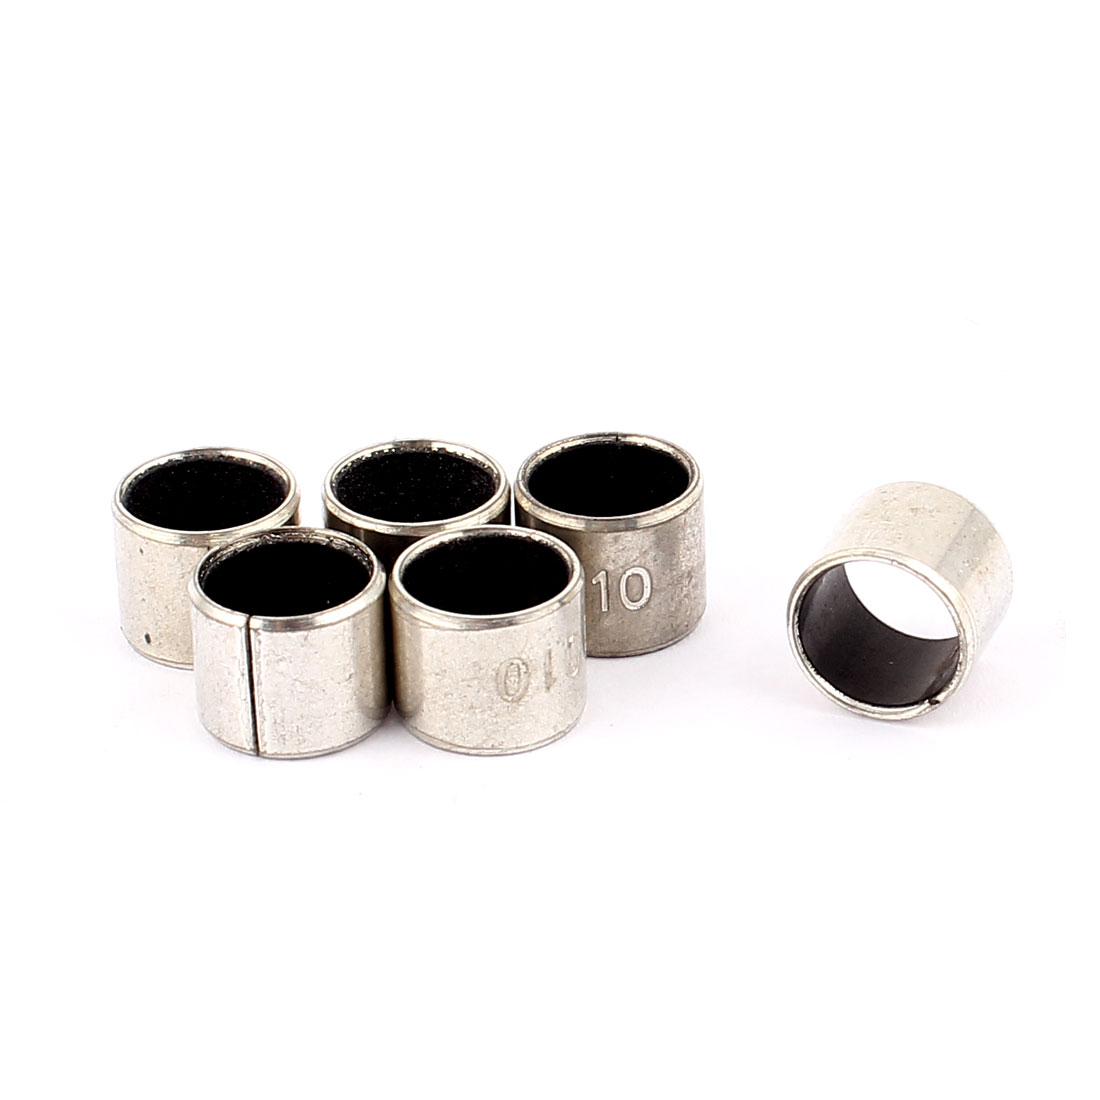 6 Pcs Self-lubricating Composite Bearing Bushing Sleeve 10mm x 12mm x 10mm